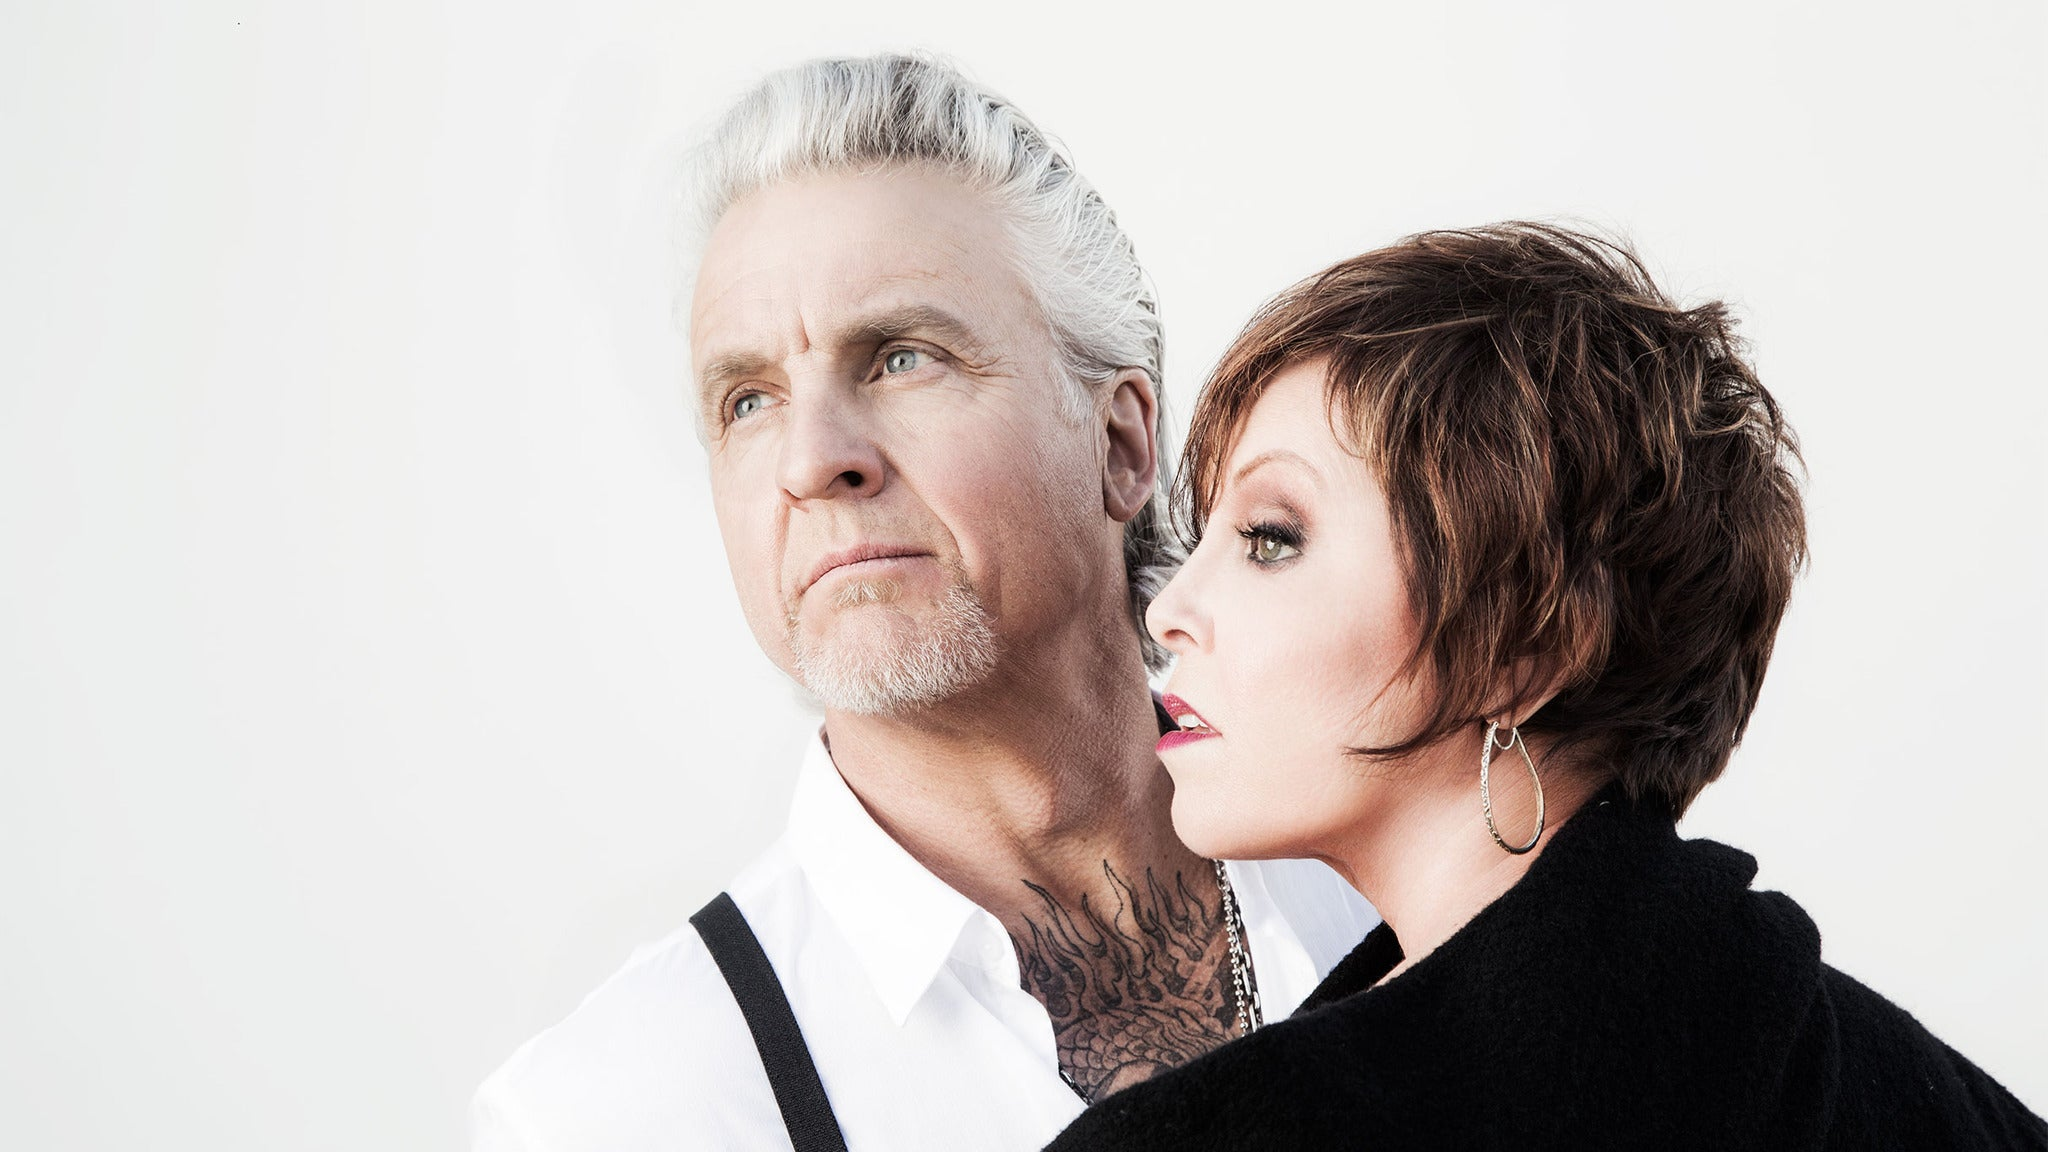 Pat Benatar & Neil Giraldo at Von Braun Center Concert Hall